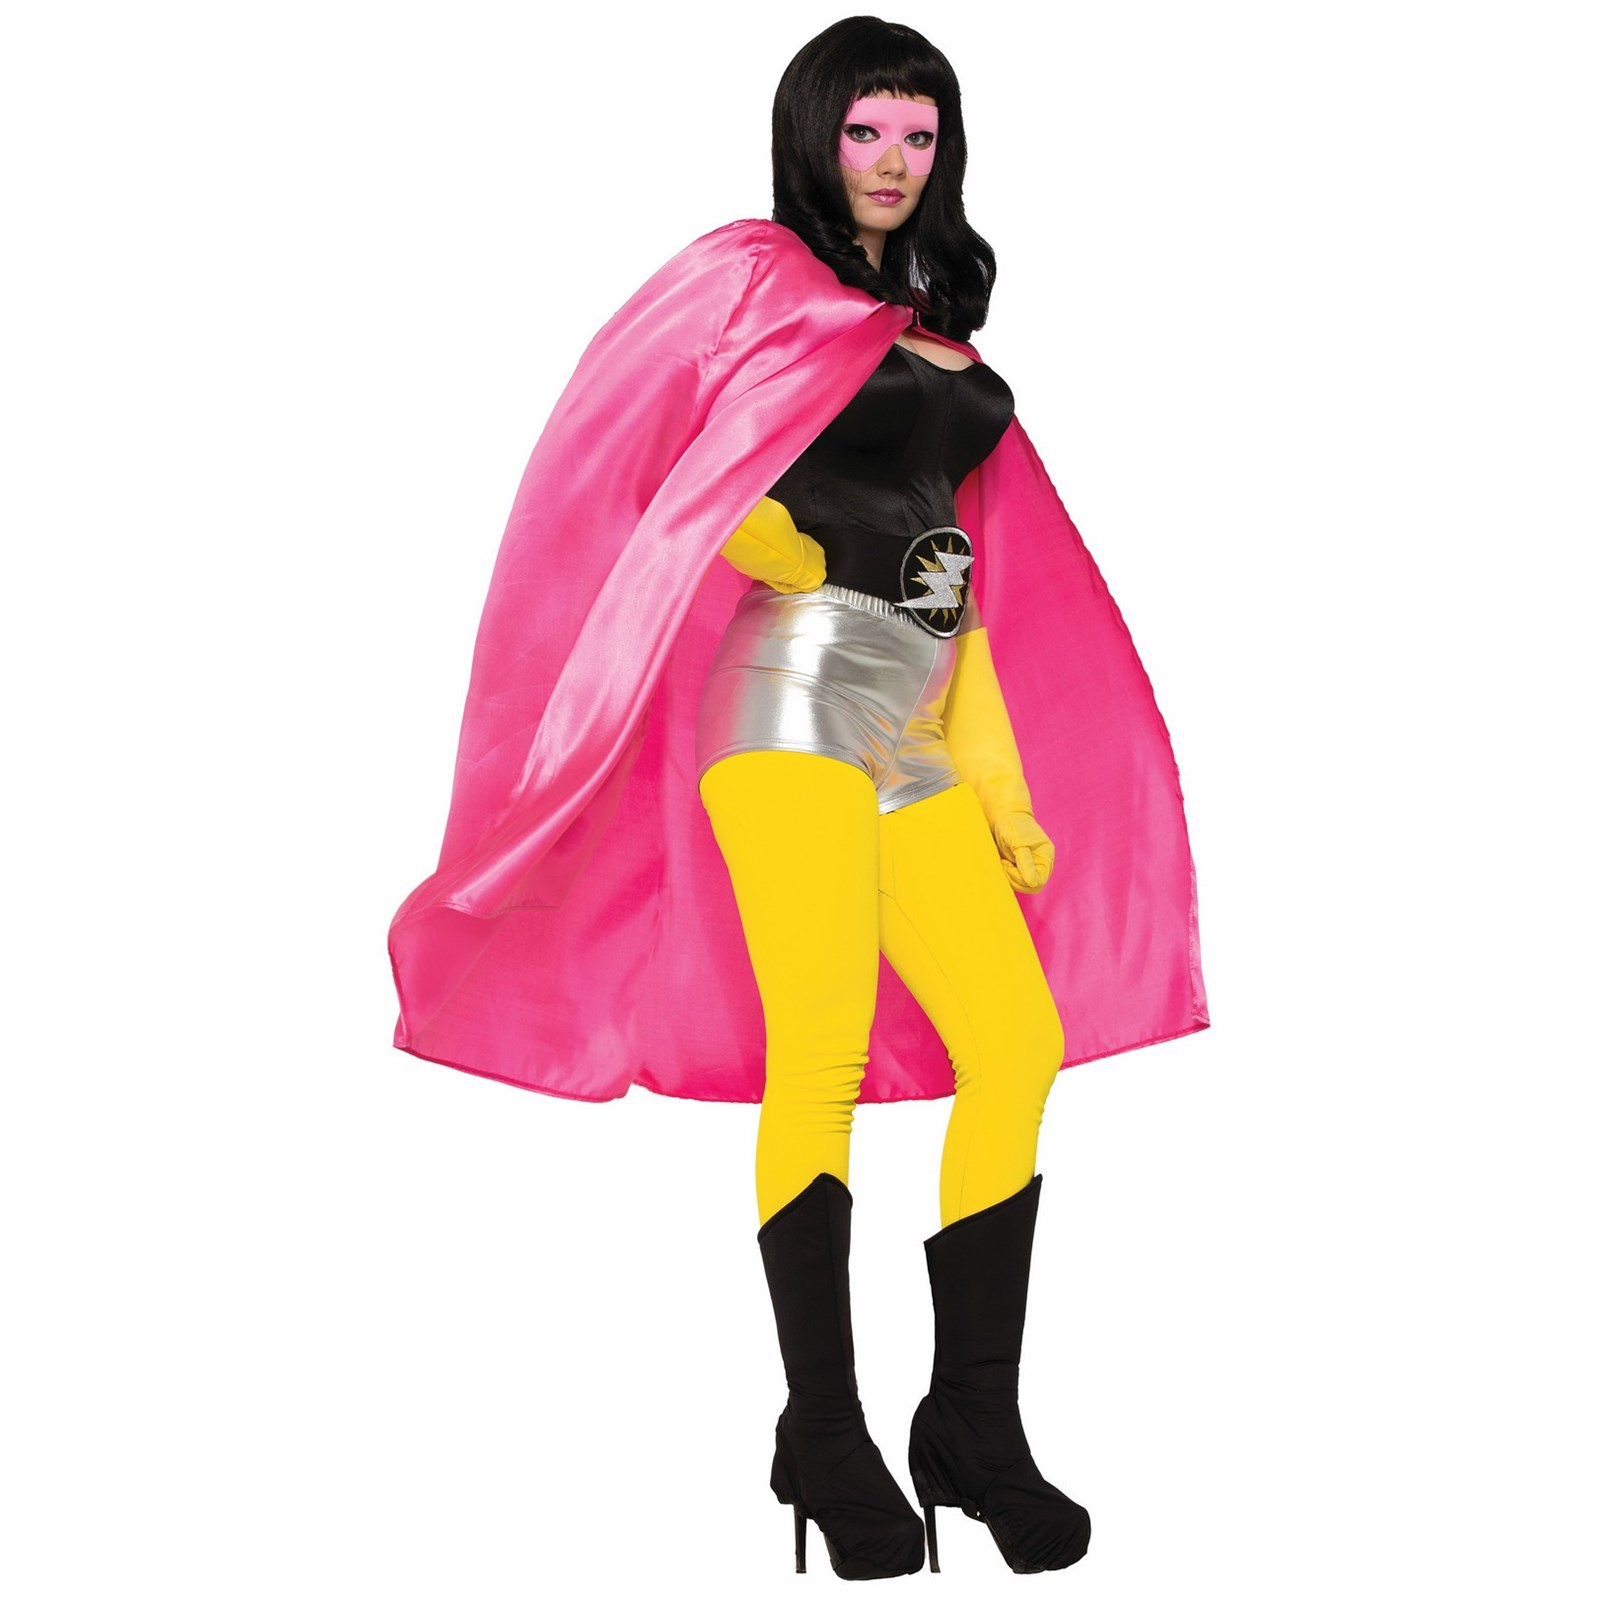 Pink Adult Cape Halloween Costume Accessory